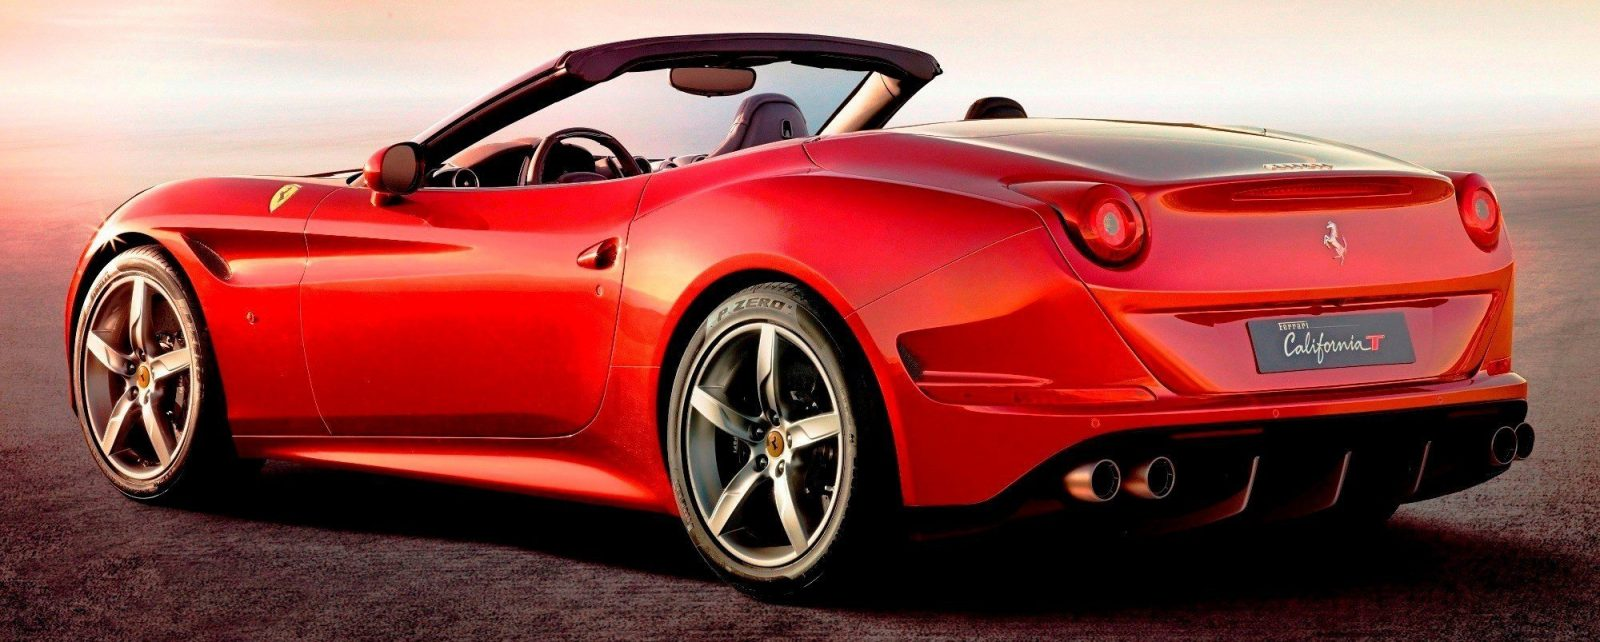 Ferrari Goes Turbo -- Geneva-bound California T Cabrio Packing 577Lb-Ft of Hissing Boost 5